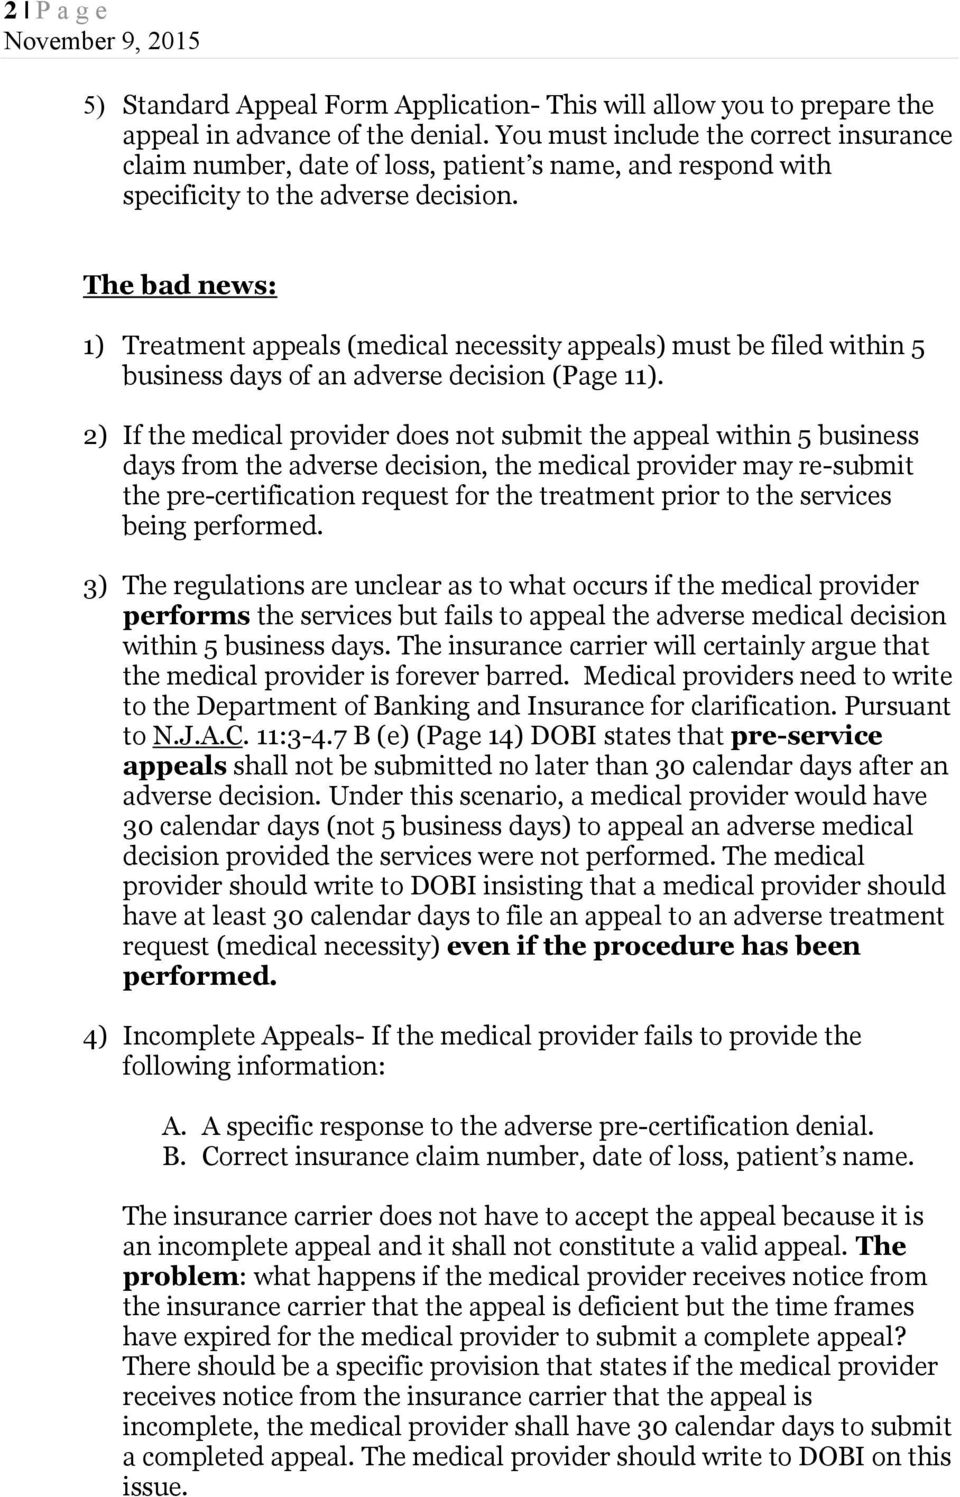 The bad news: 1) Treatment appeals (medical necessity appeals) must be filed within 5 business days of an adverse decision (Page 11).